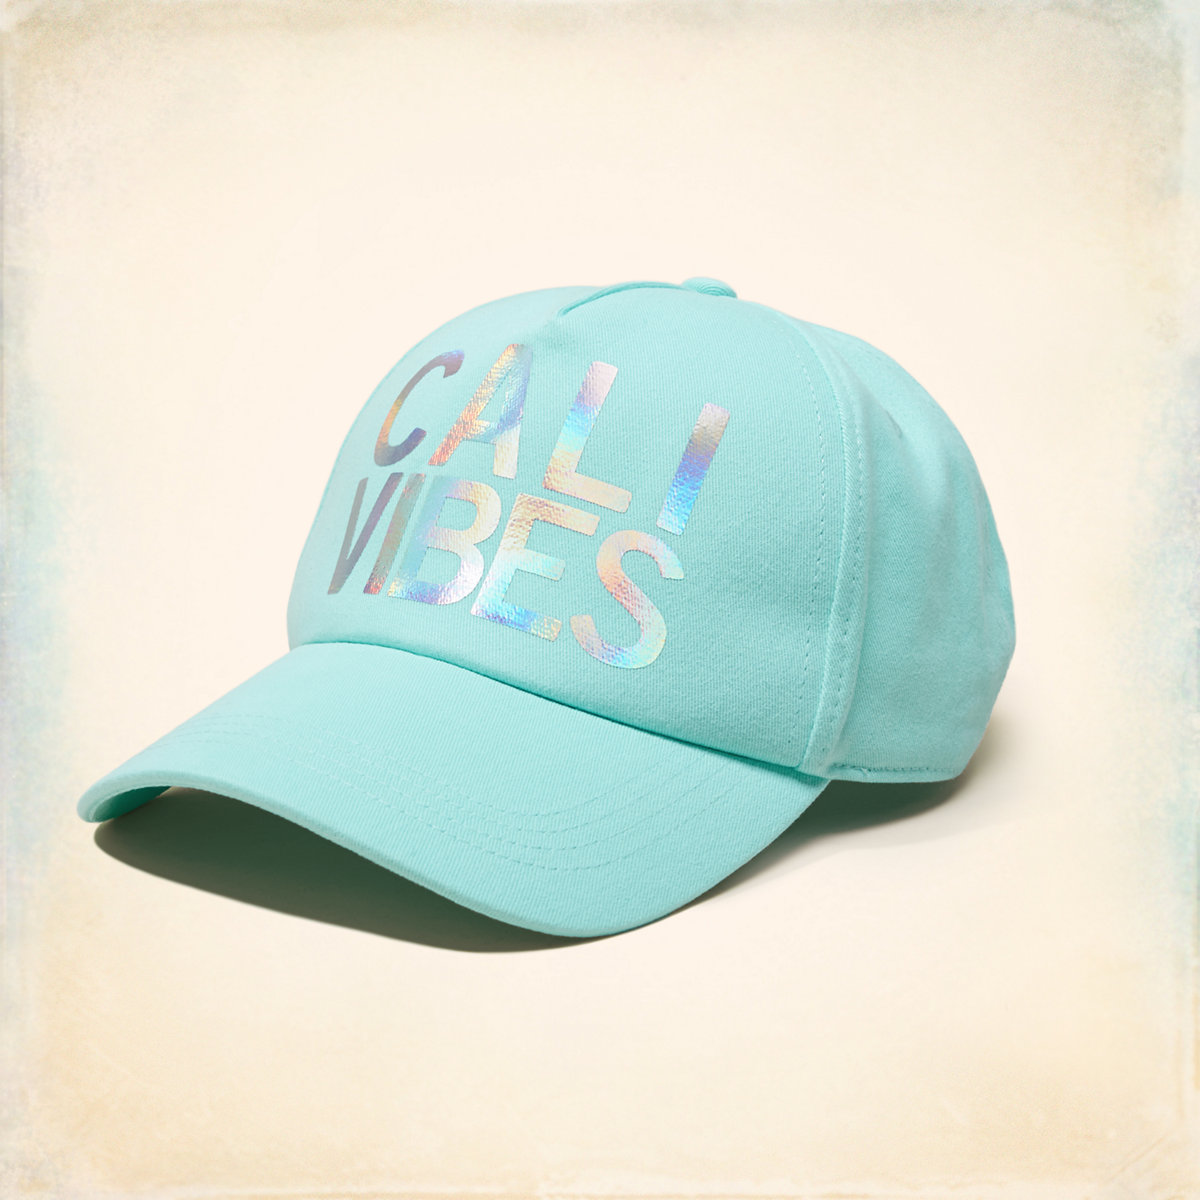 Iridescent Graphic Hat